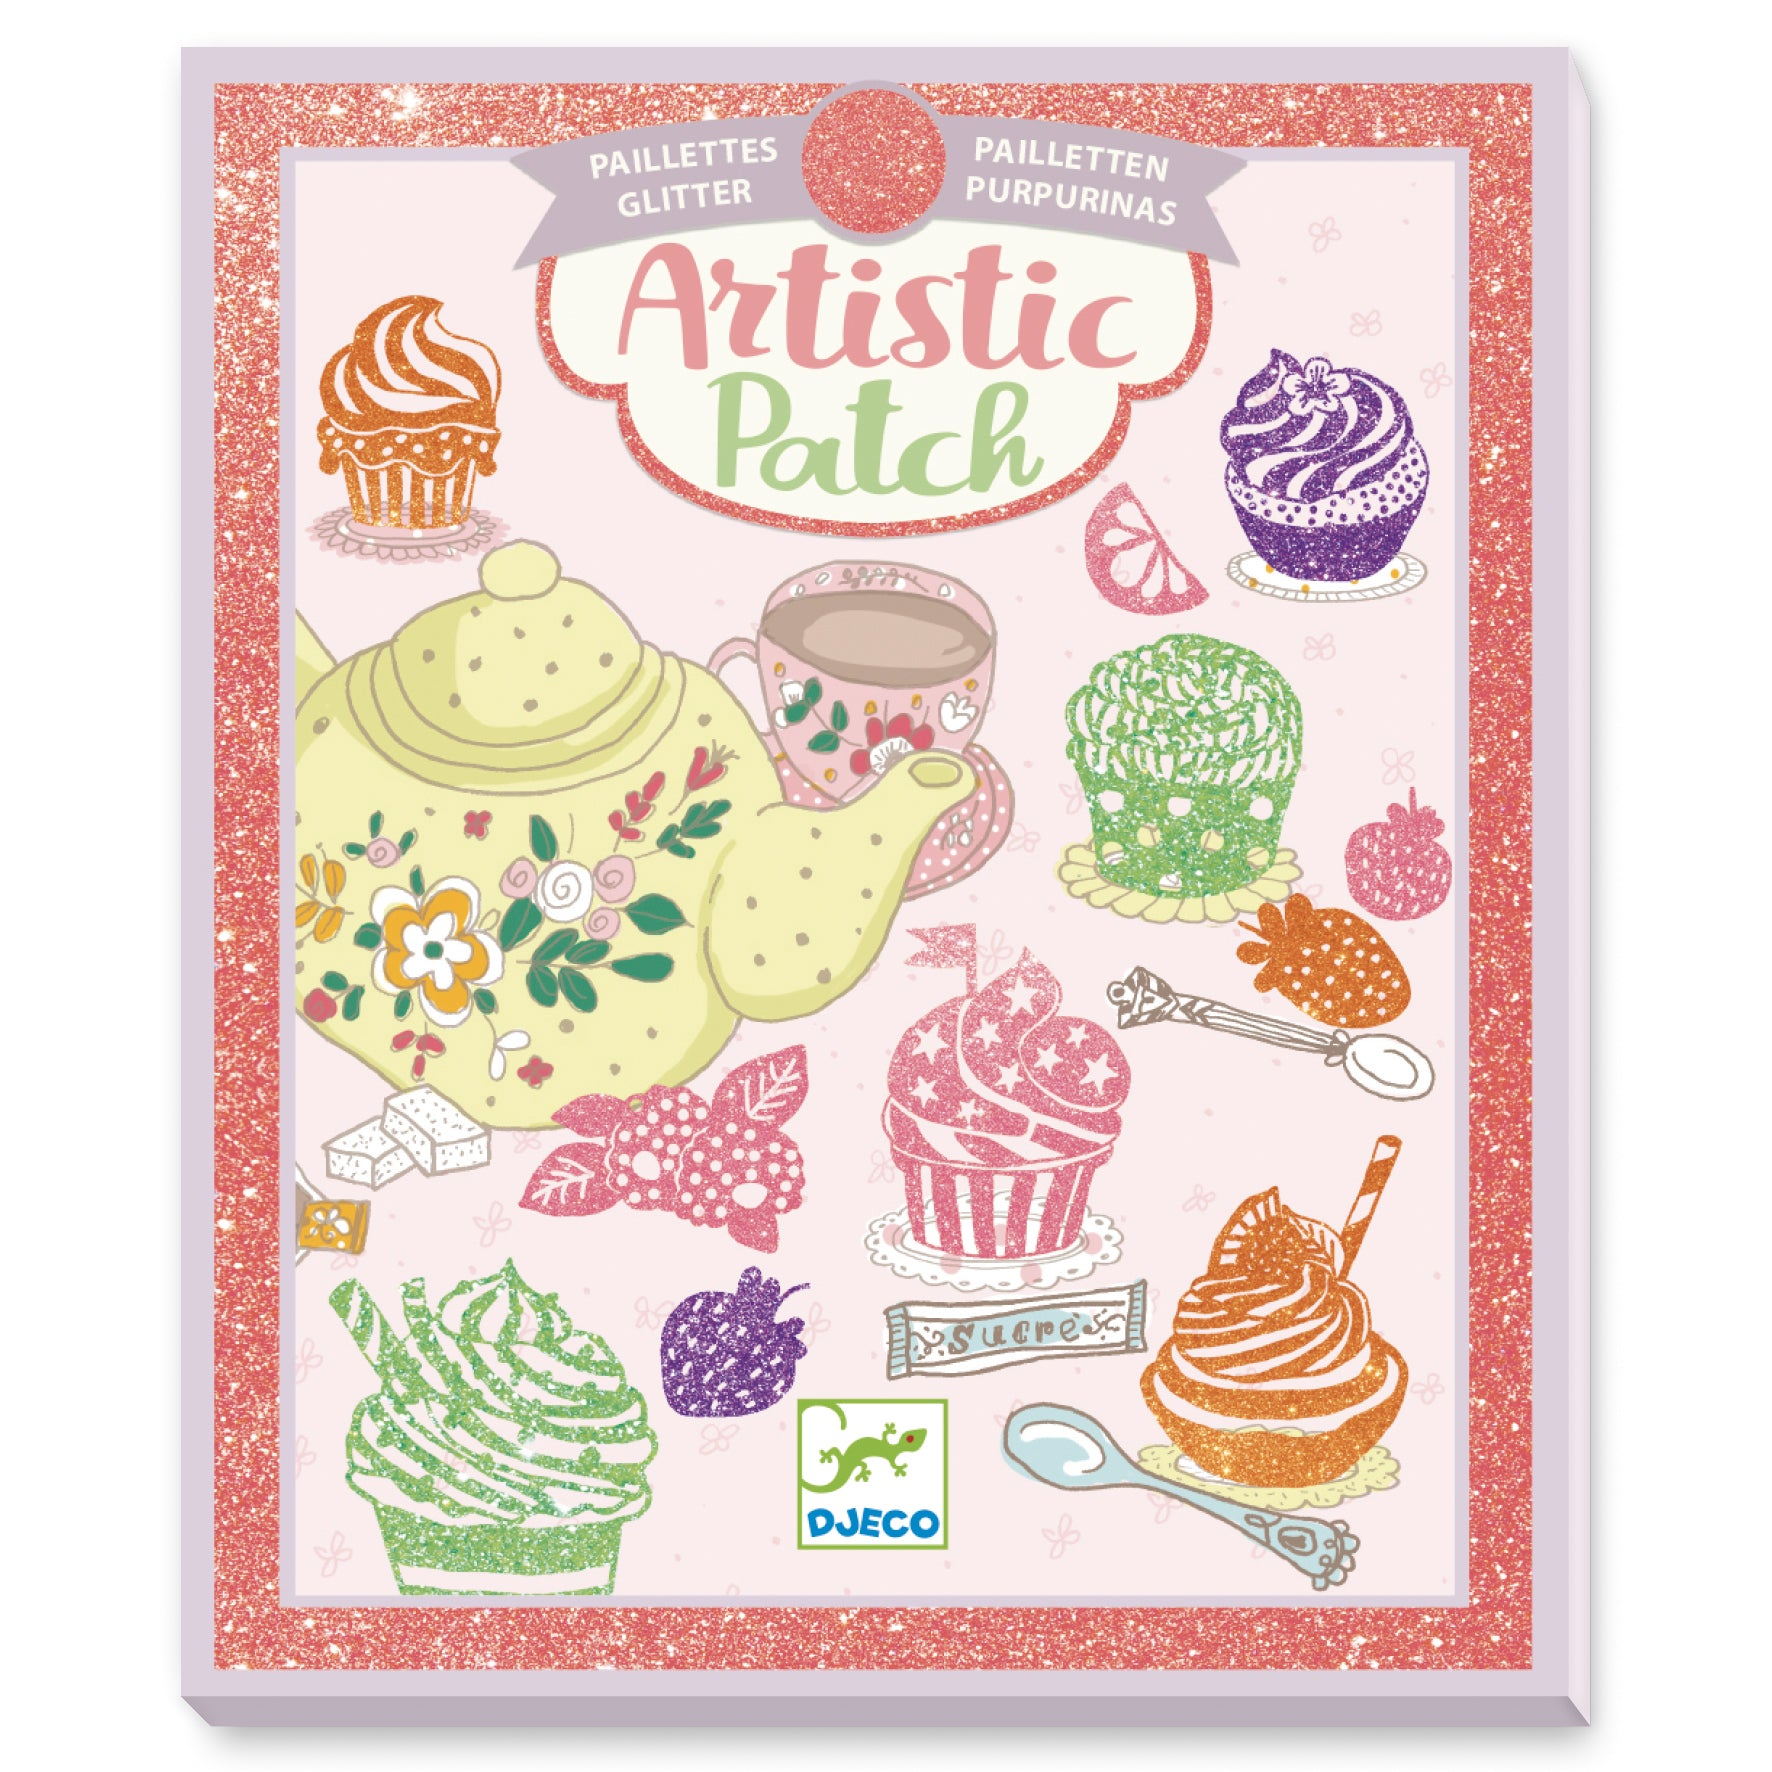 Artistic patch glitter / Gourmandises